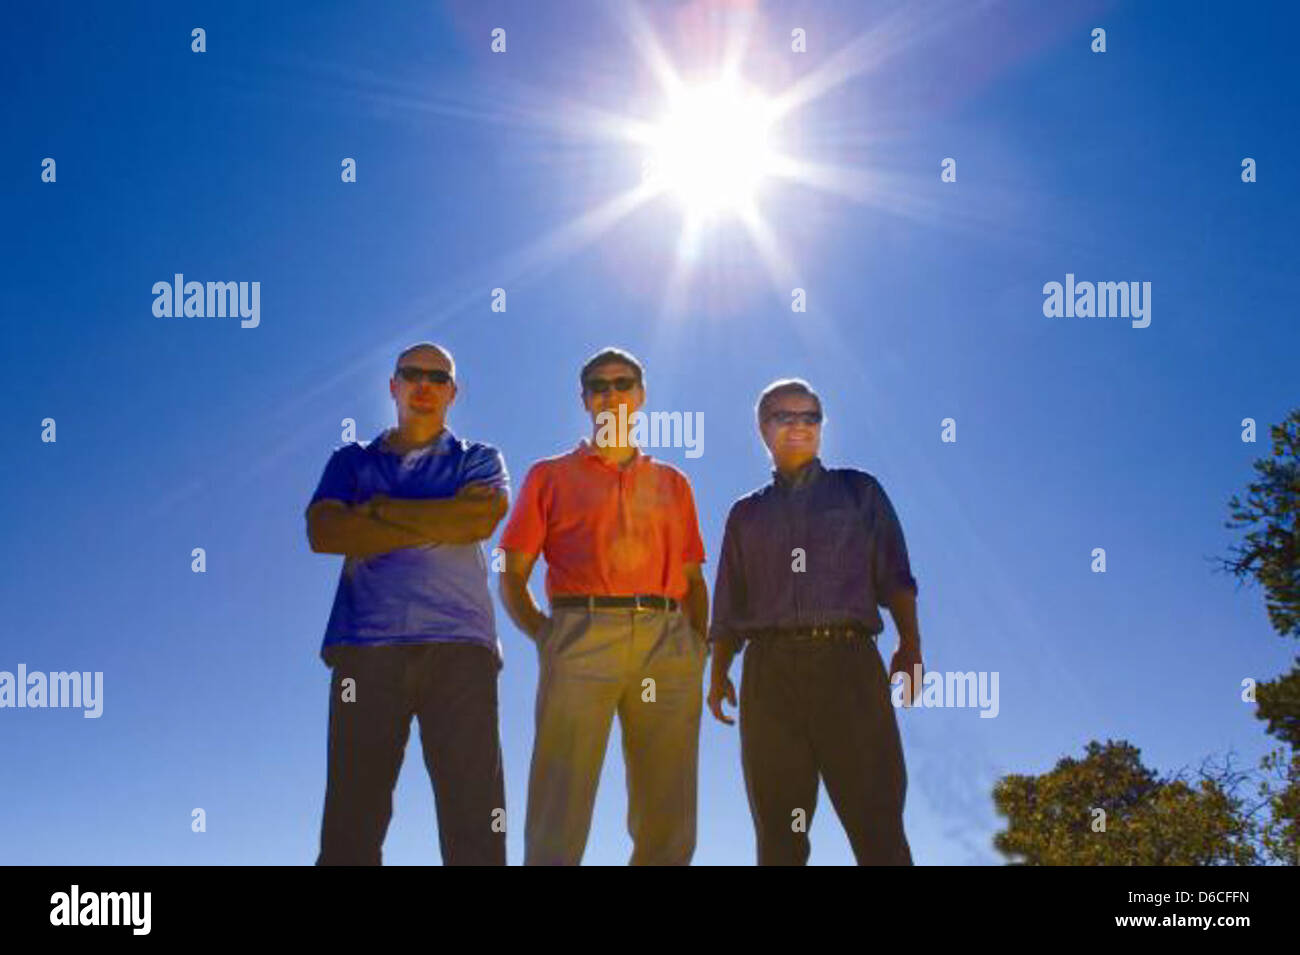 Left to right, Los Alamos physicists Richard Van de Water, Bill Louis, and Geoff Mills - Stock Image